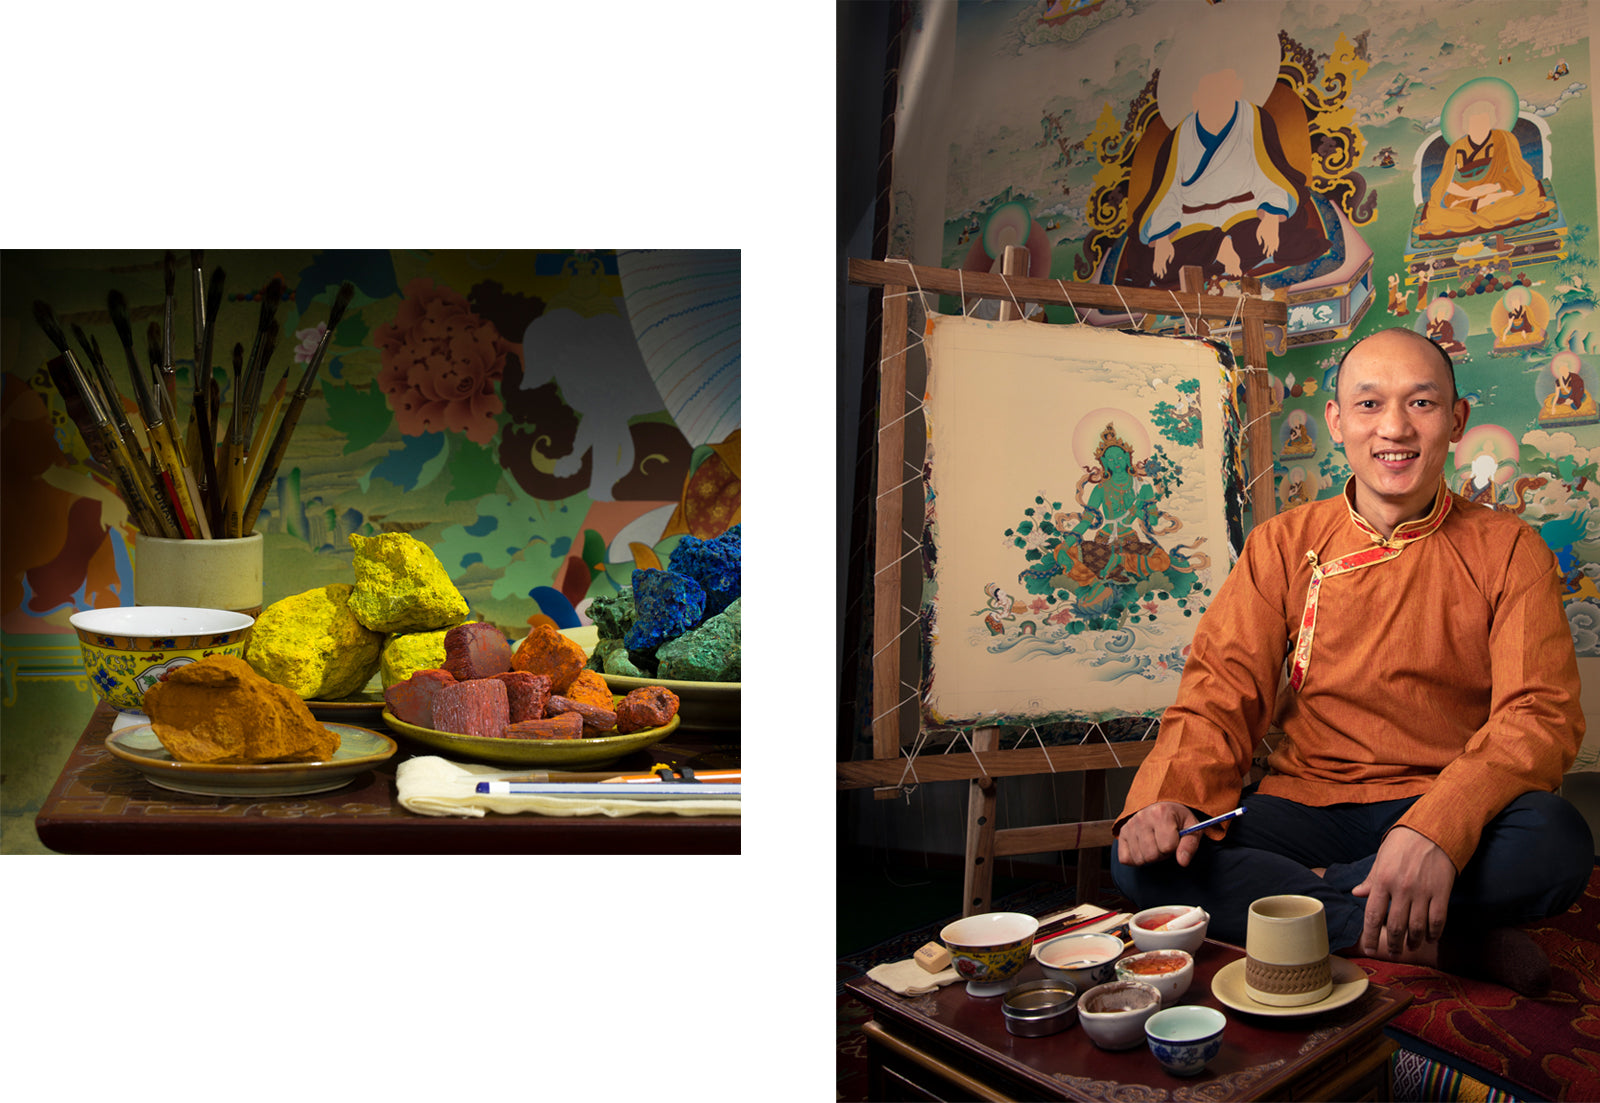 stone color for thangka painting